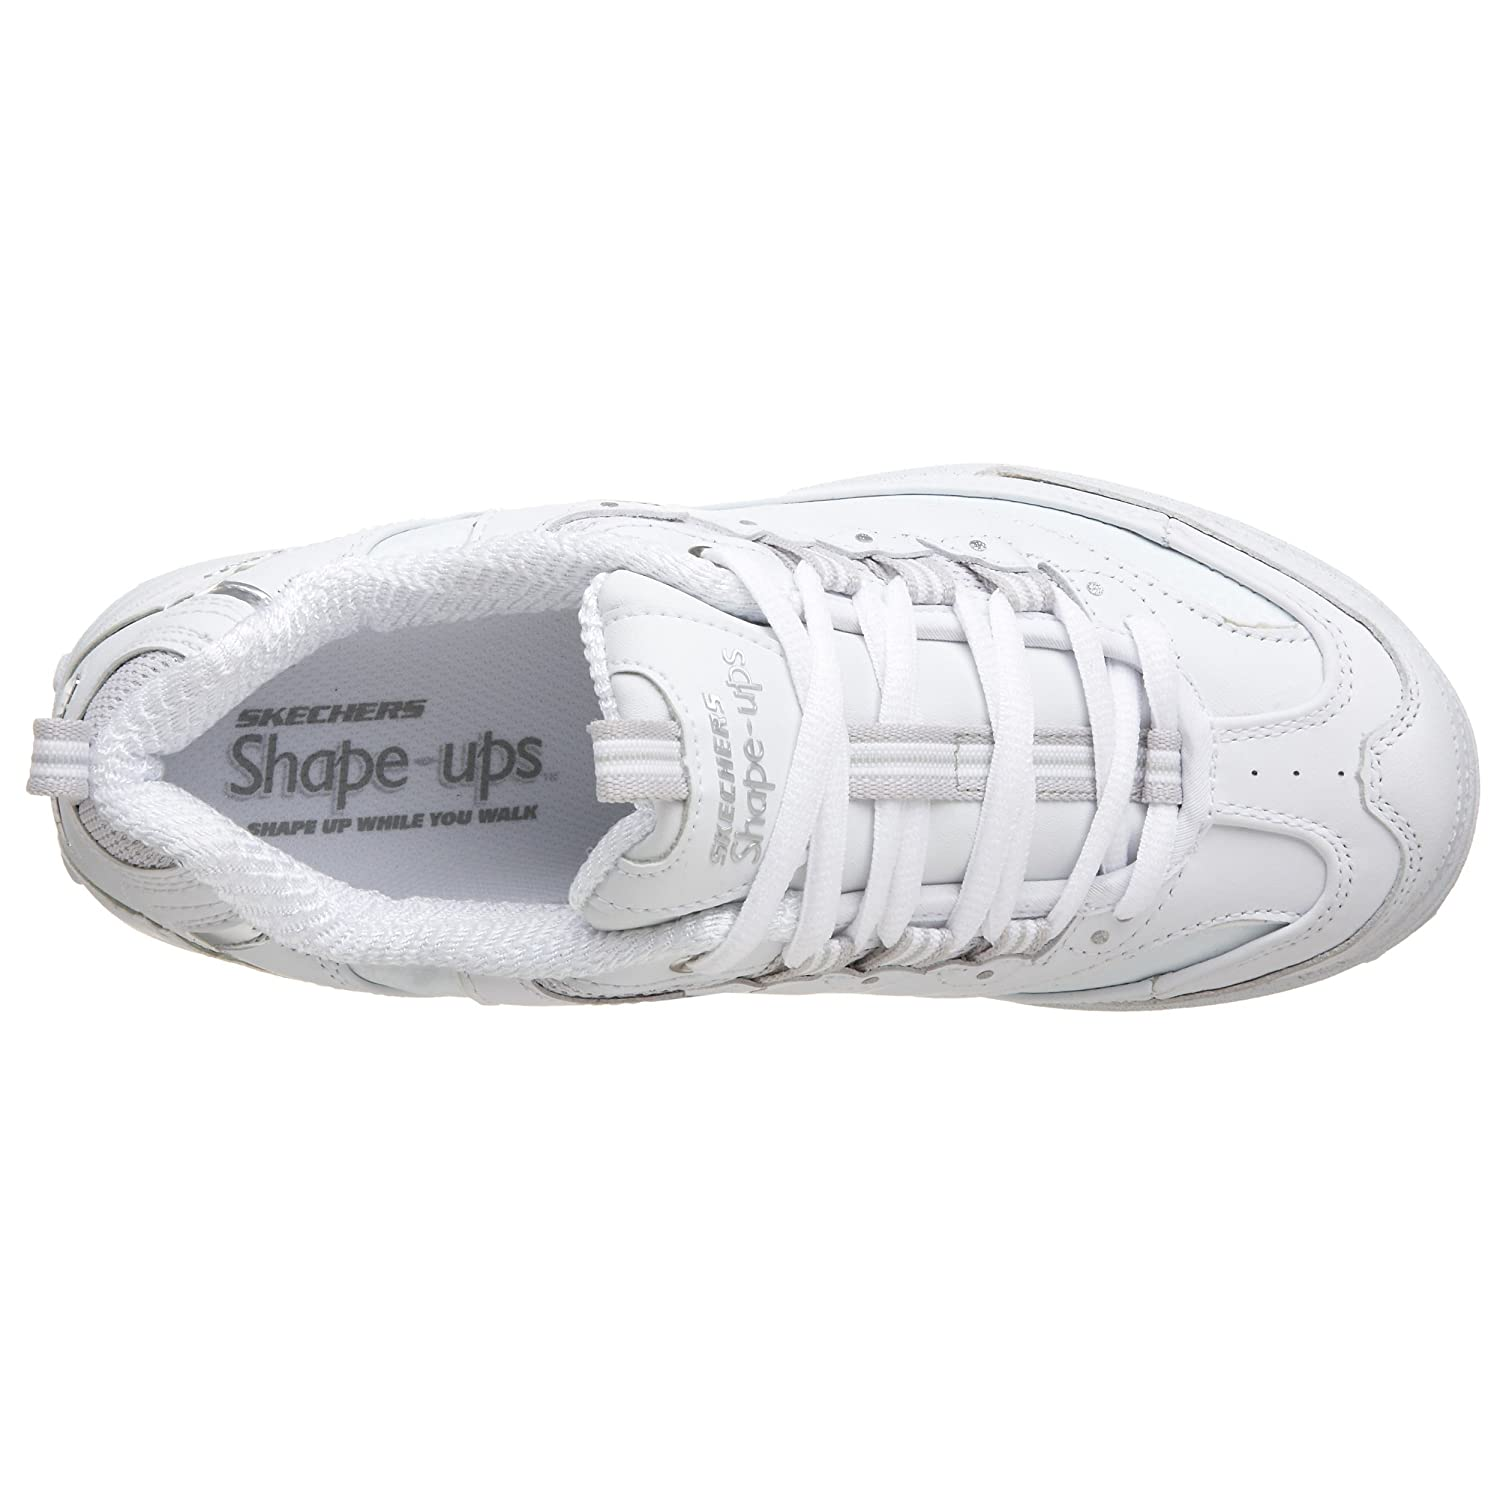 Skechers Women's Work Shape Ups Metabolize Fitness Work Women's Out Sneaker B002DZ3B42 8 W US|White/Silver c67e5c